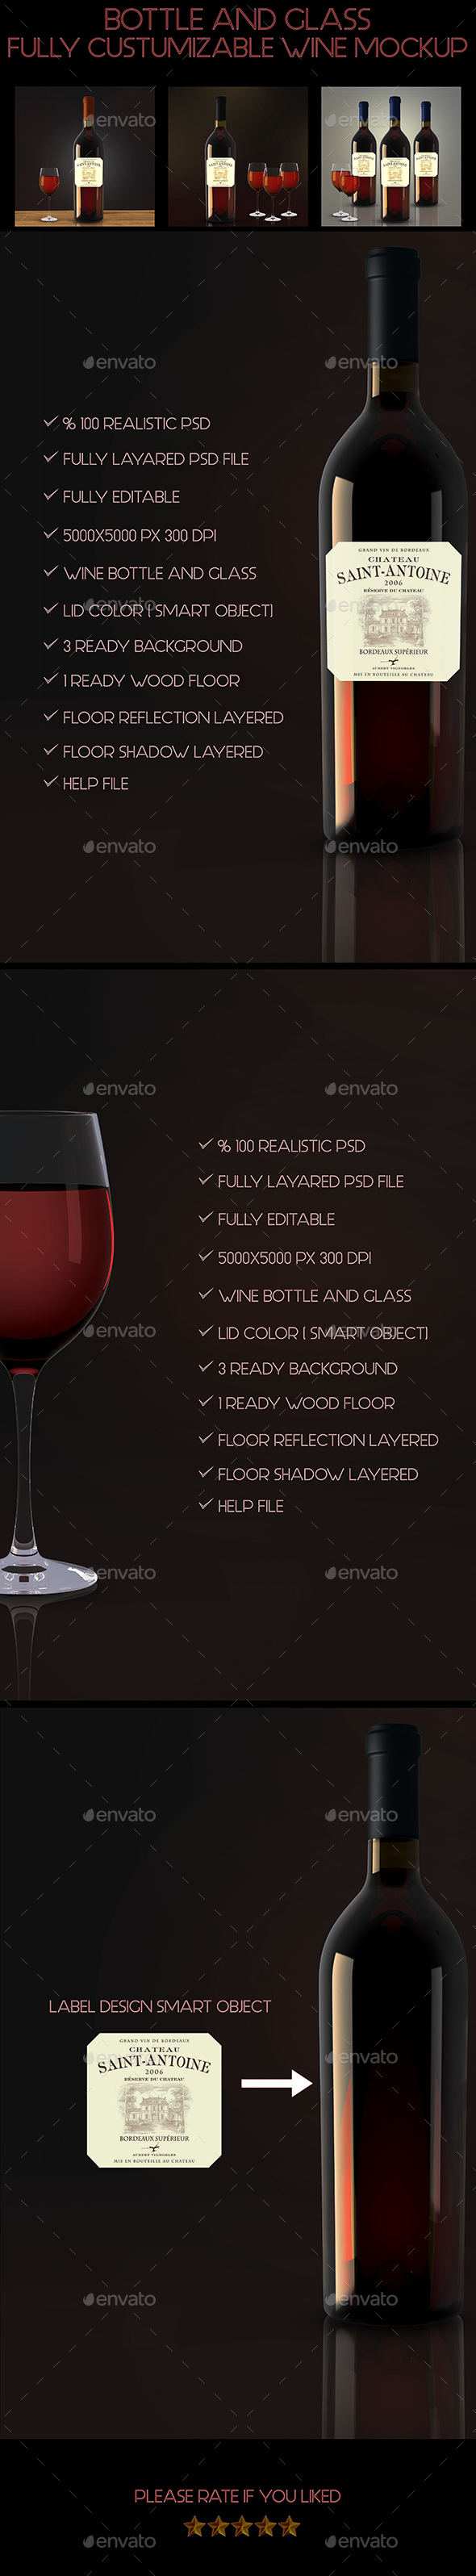 Bottle and Glass Wine Mockup - Food and Drink Packaging